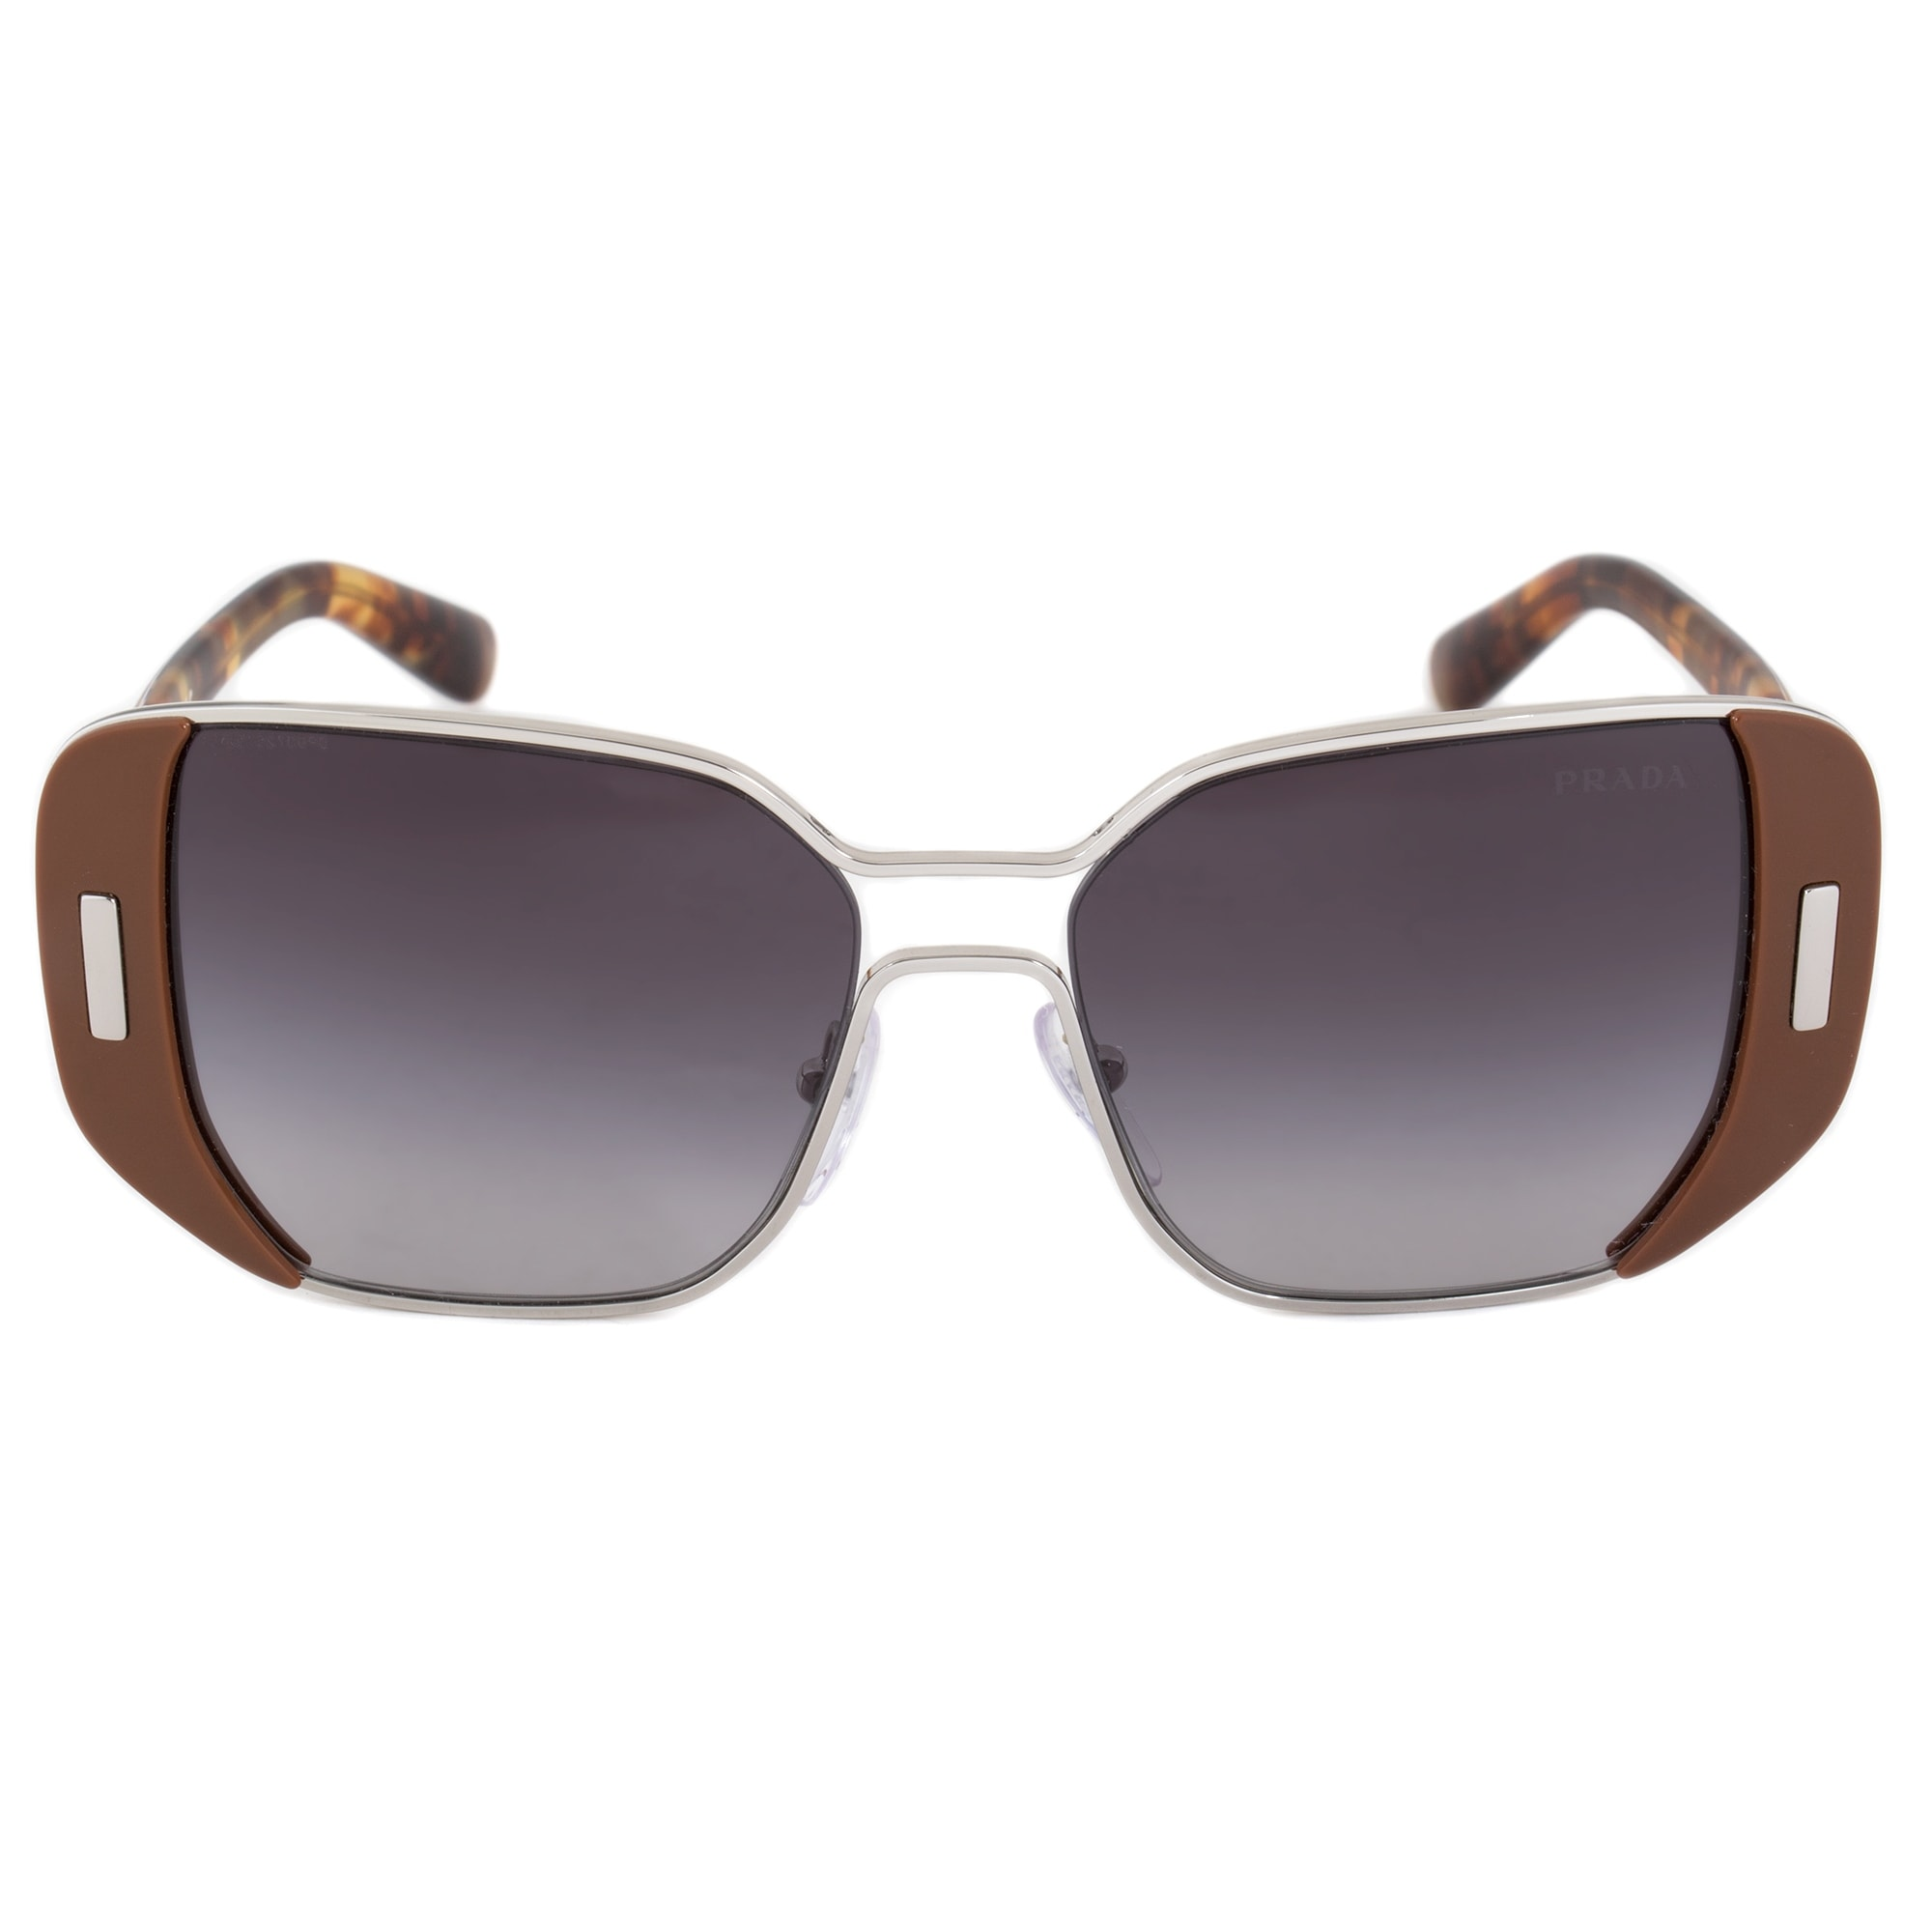 670458295f29 Prada Square Sunglasses PR59SS USA5D1 54 | Silver and Brown Frame | Gray  Gradient Lenses